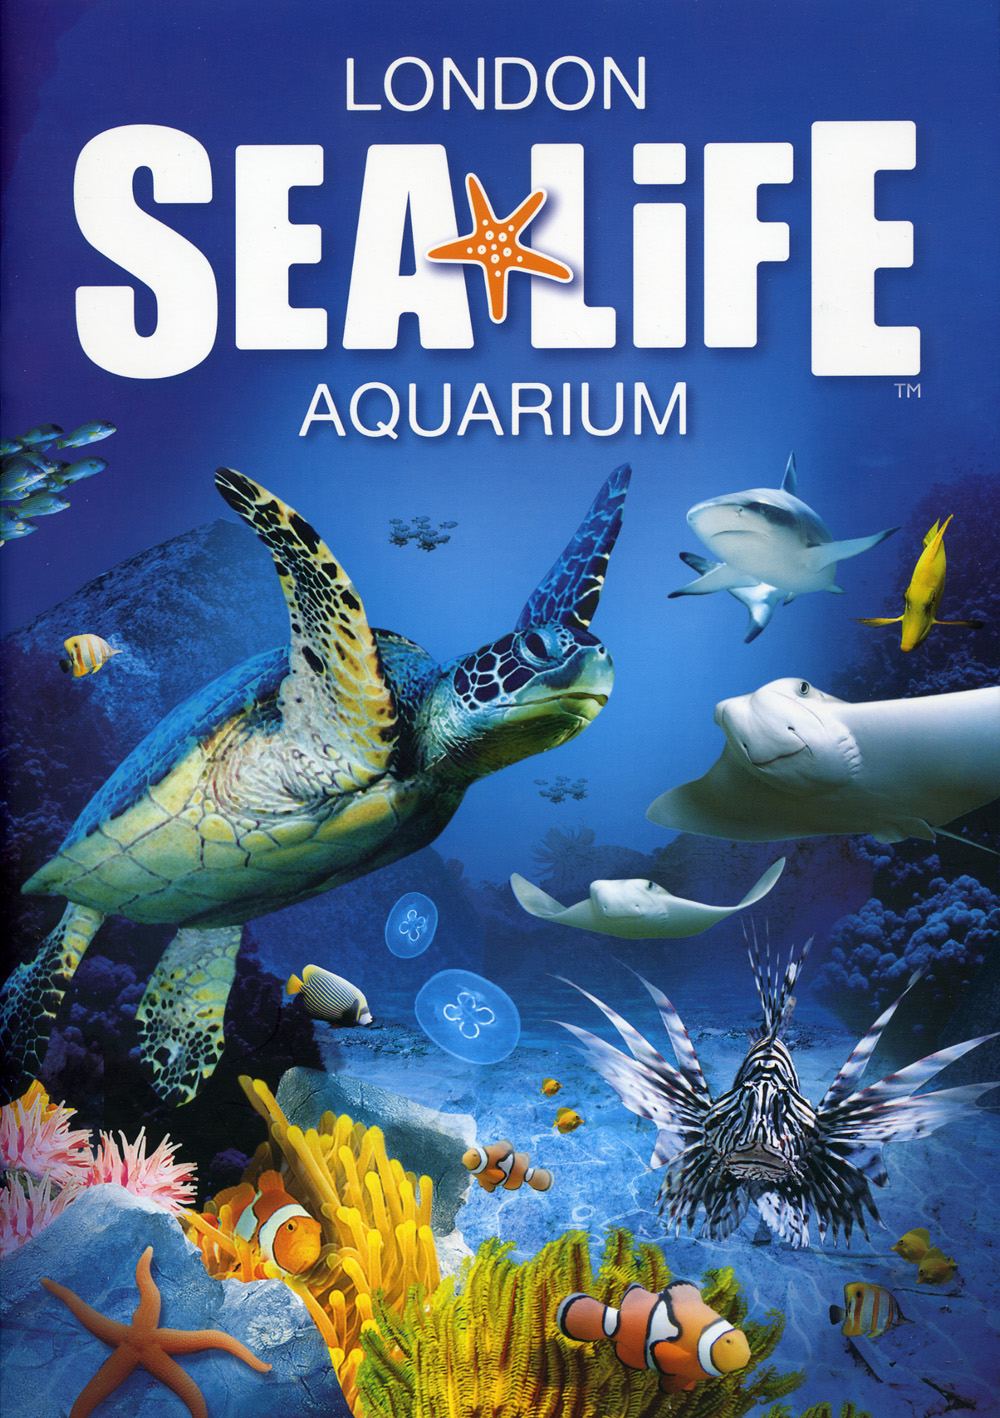 london-sea-life-aquarium-1.jpg